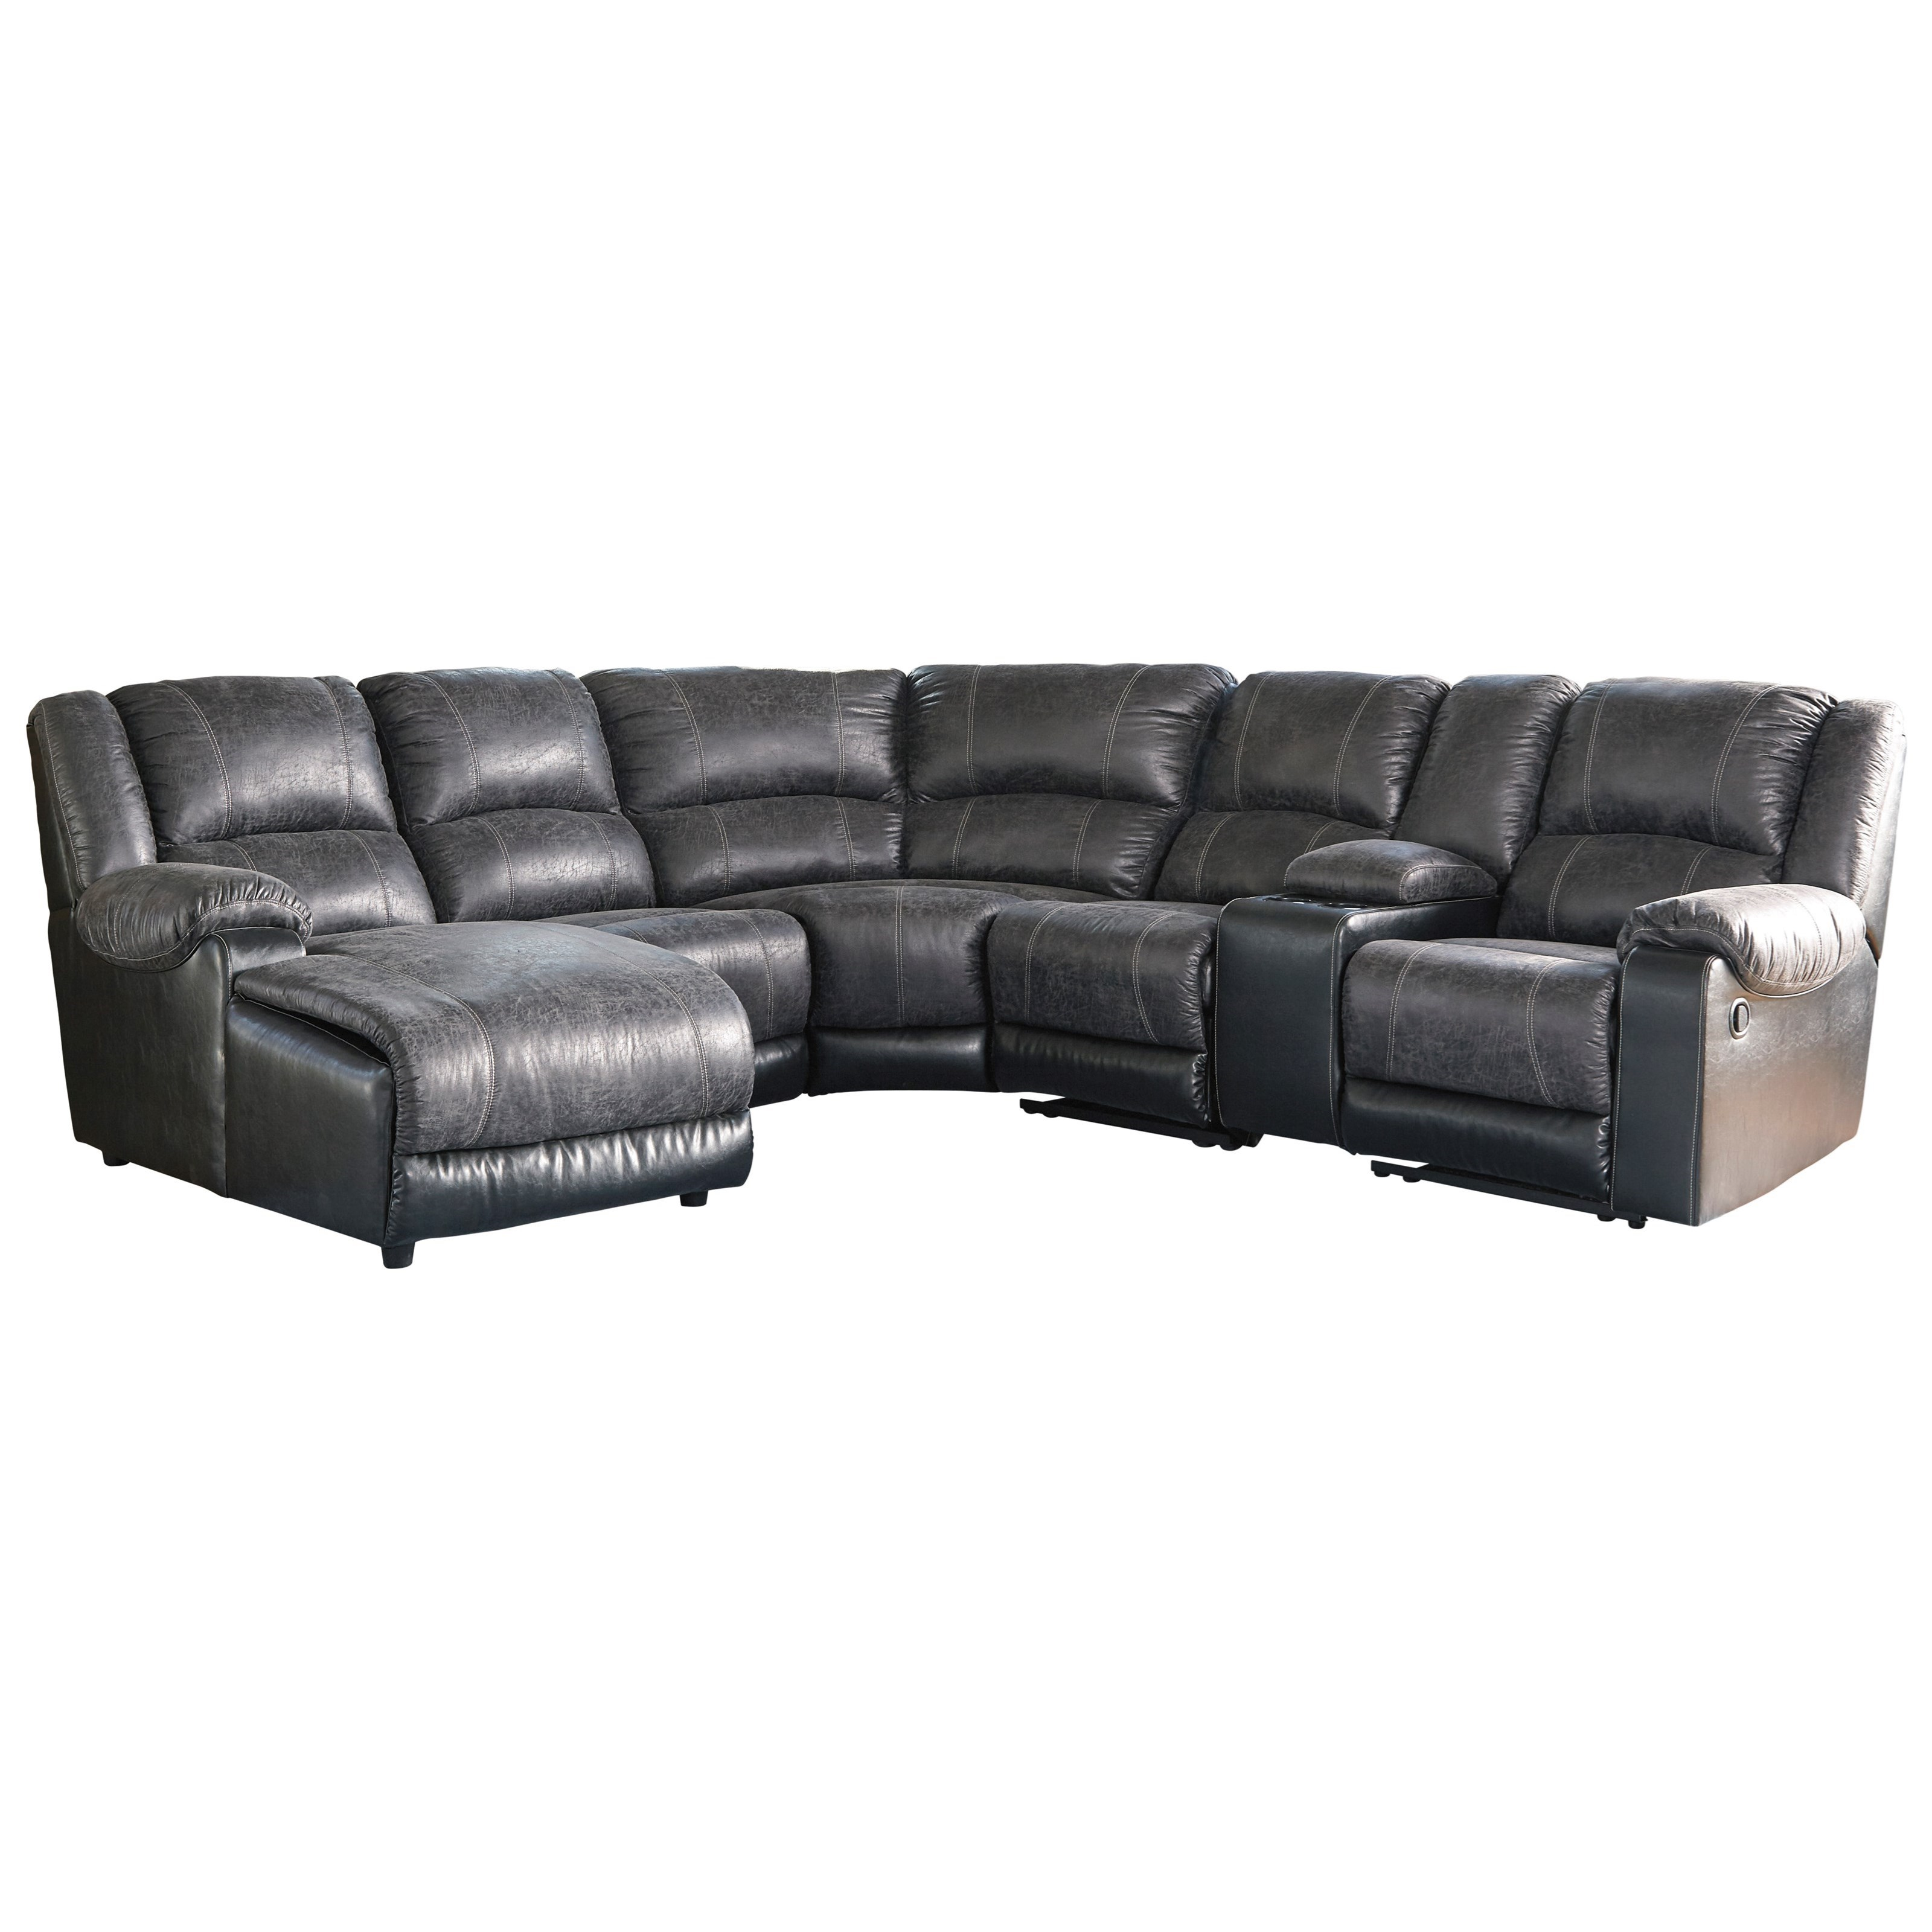 Nantahala Reclining Sectional with Chaise & Console by Signature Design by Ashley at Value City Furniture